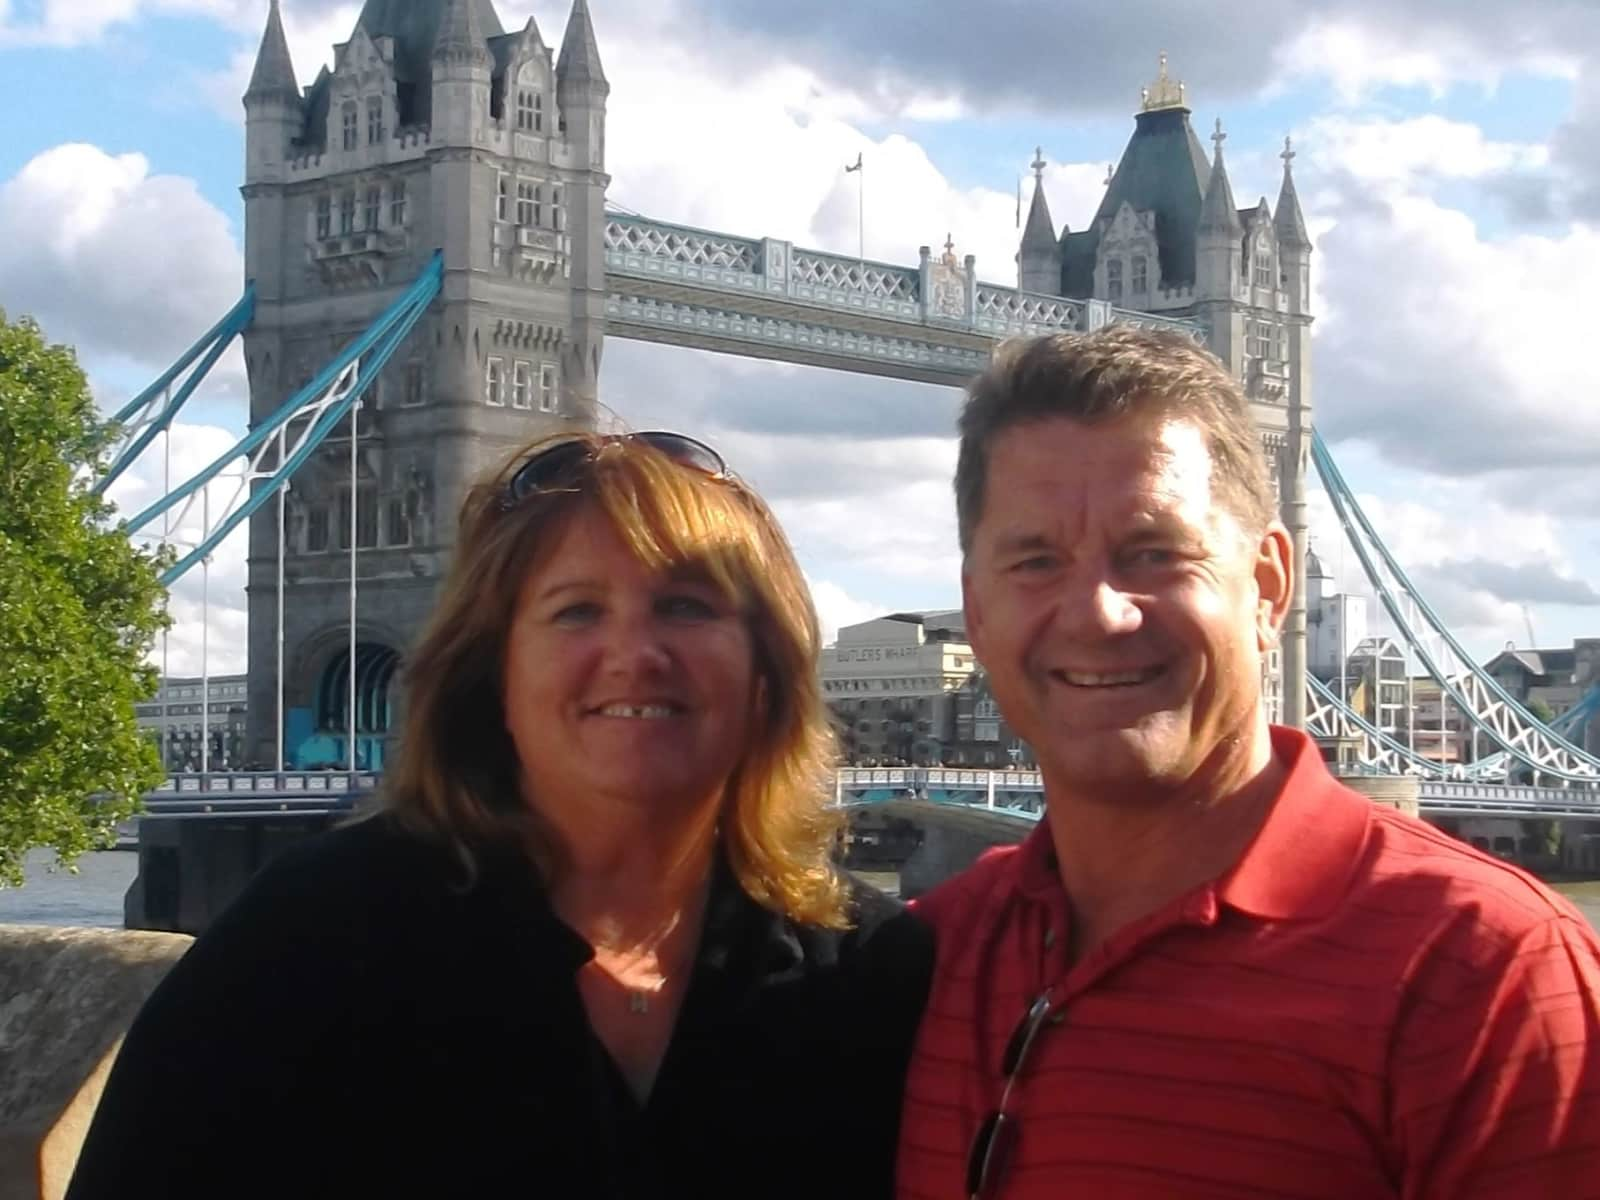 Lori & Dean from Auckland, New Zealand